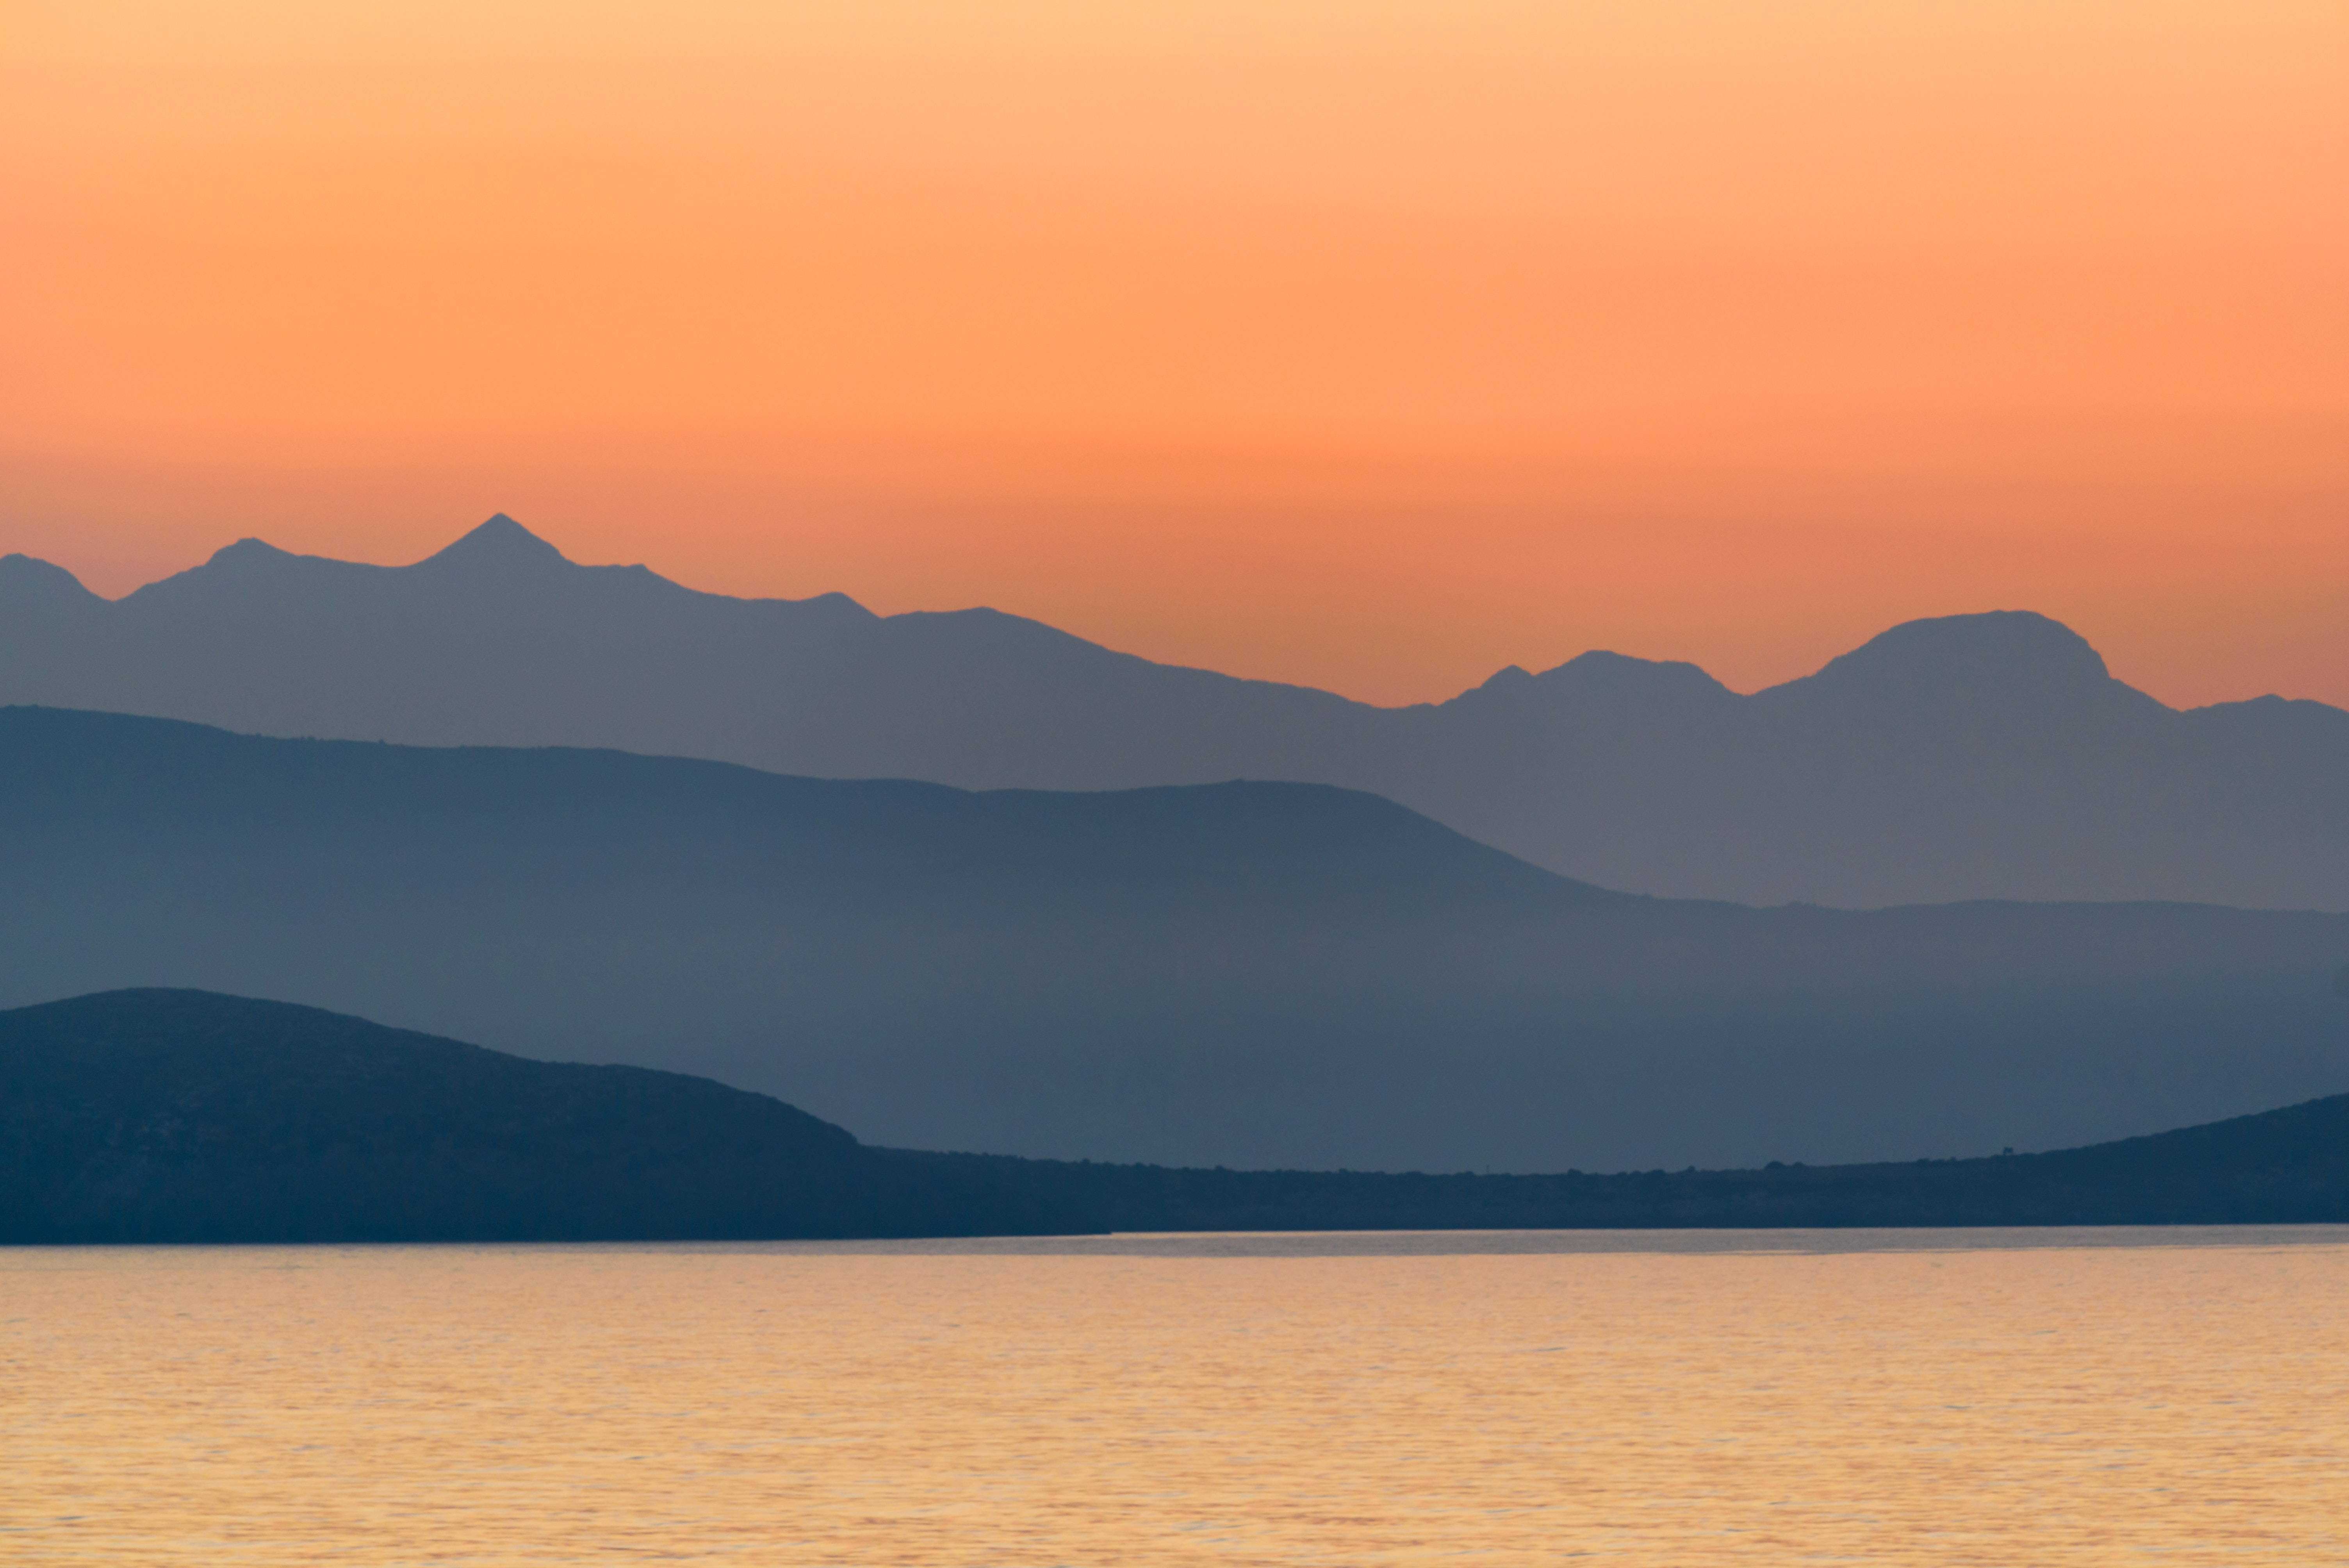 An orange sky at sunset over the tranquil water and Peloponnese mountains